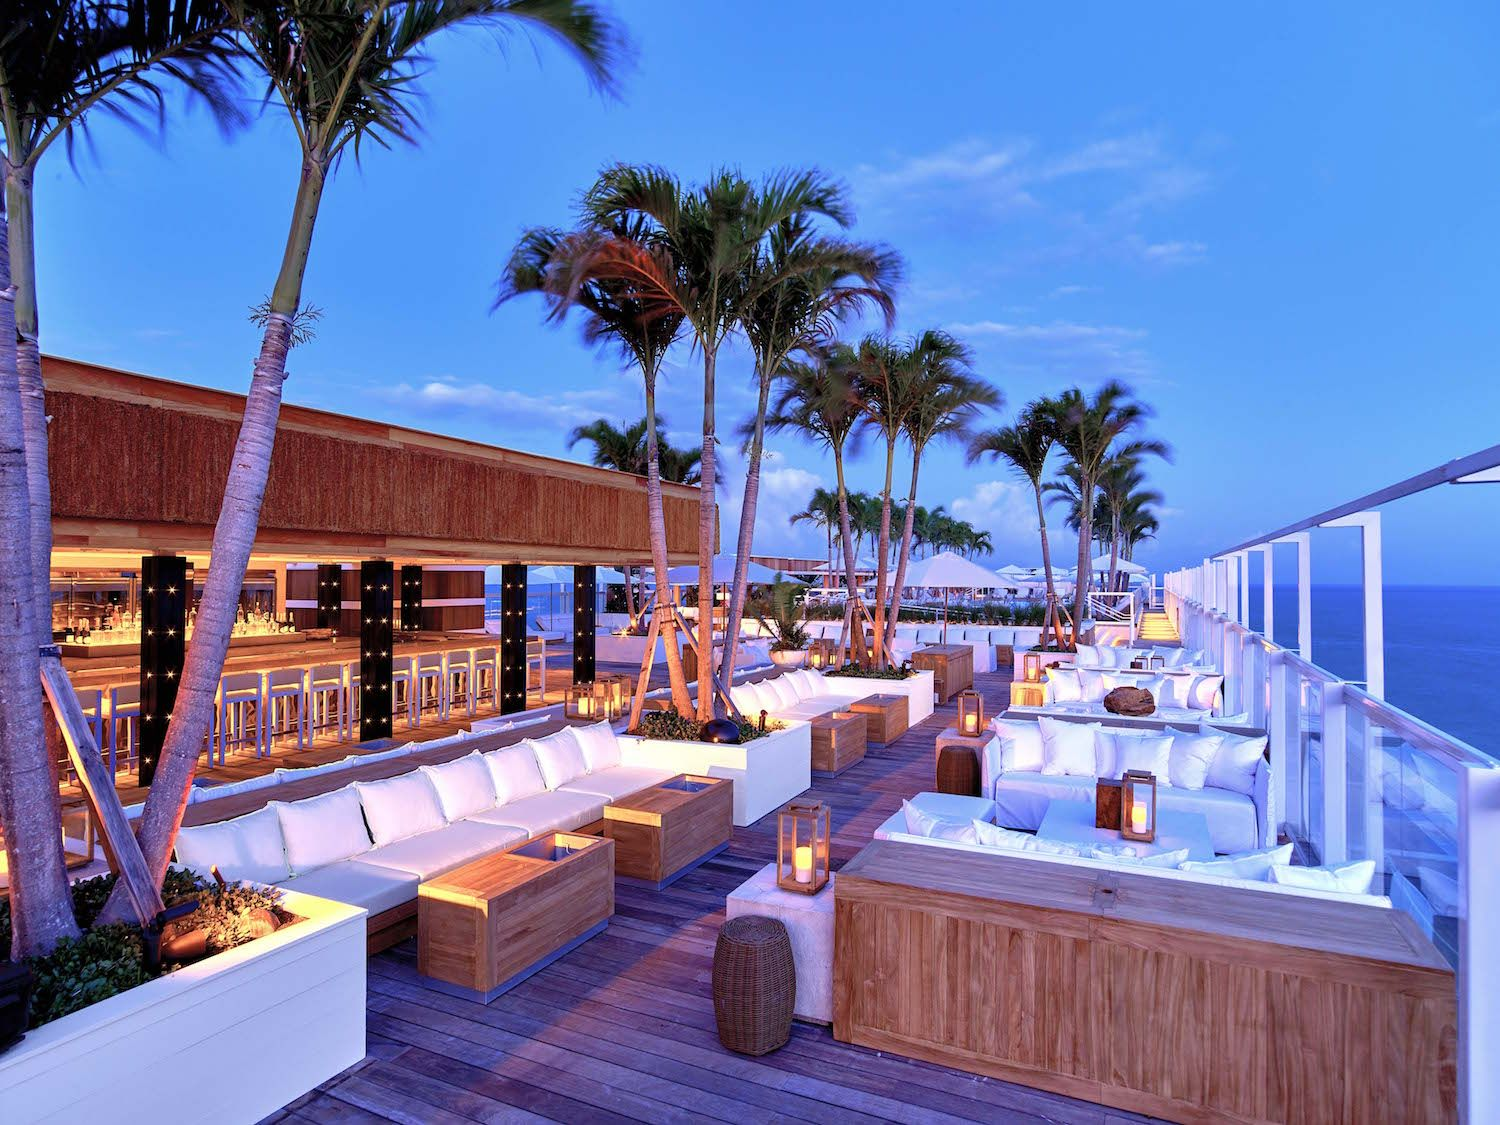 Hot Hotels Cool Restaurants The New Best Of Miami At 1 Hotel South Beach And The Plymouth 1 Hotel Best Rooftop Bars Grand Beach Hotel Rooftop Bar